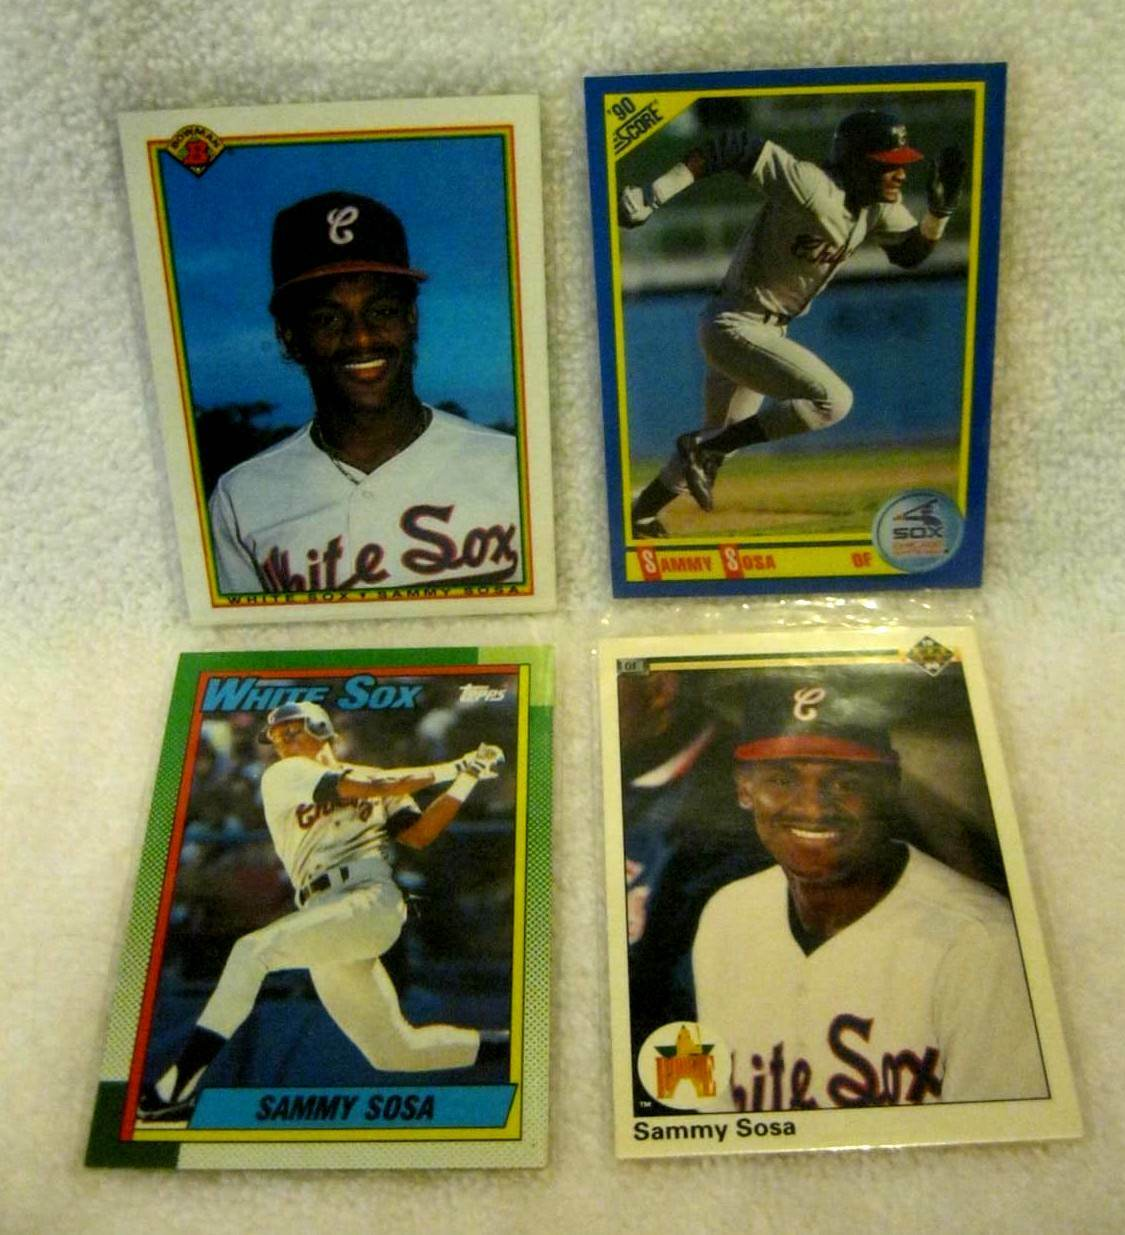 SAMMY SOSA RC 1990 BOWMAN,SCORE,TOPPS,UPPER DECK ROOKIE